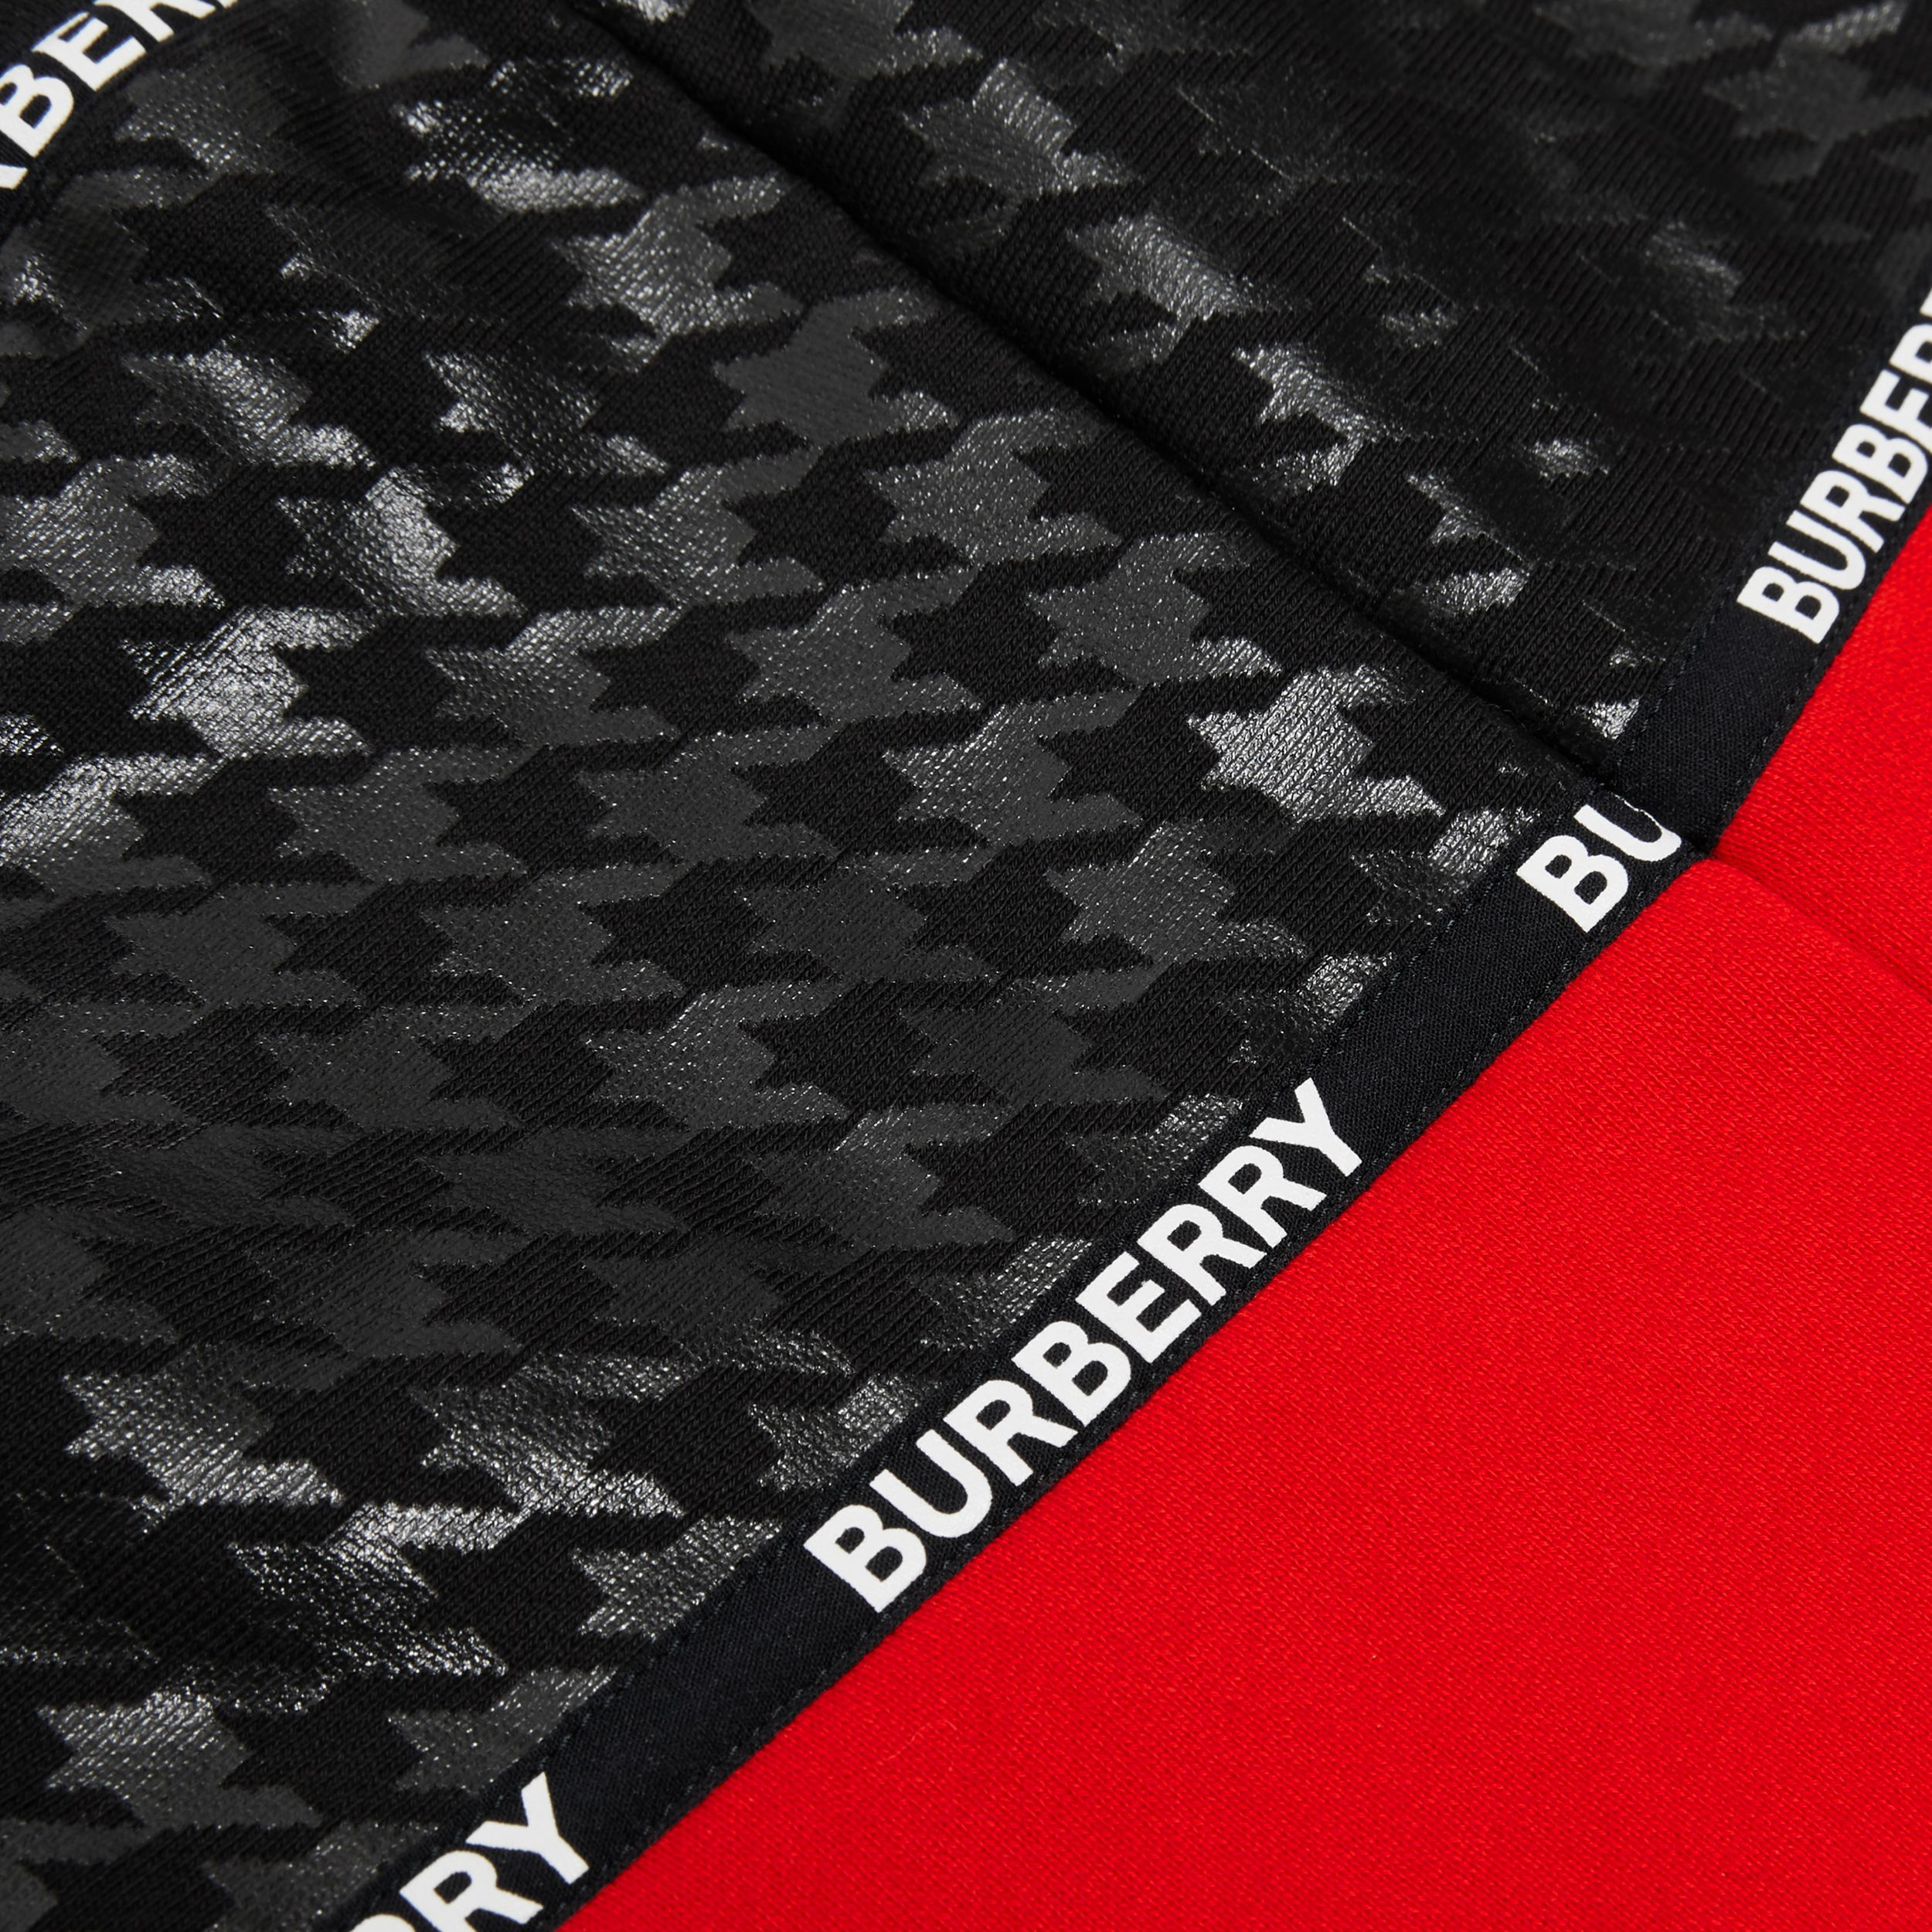 Houndstooth Check Panel Cotton Shorts in Bright Red | Burberry Hong Kong S.A.R. - 2